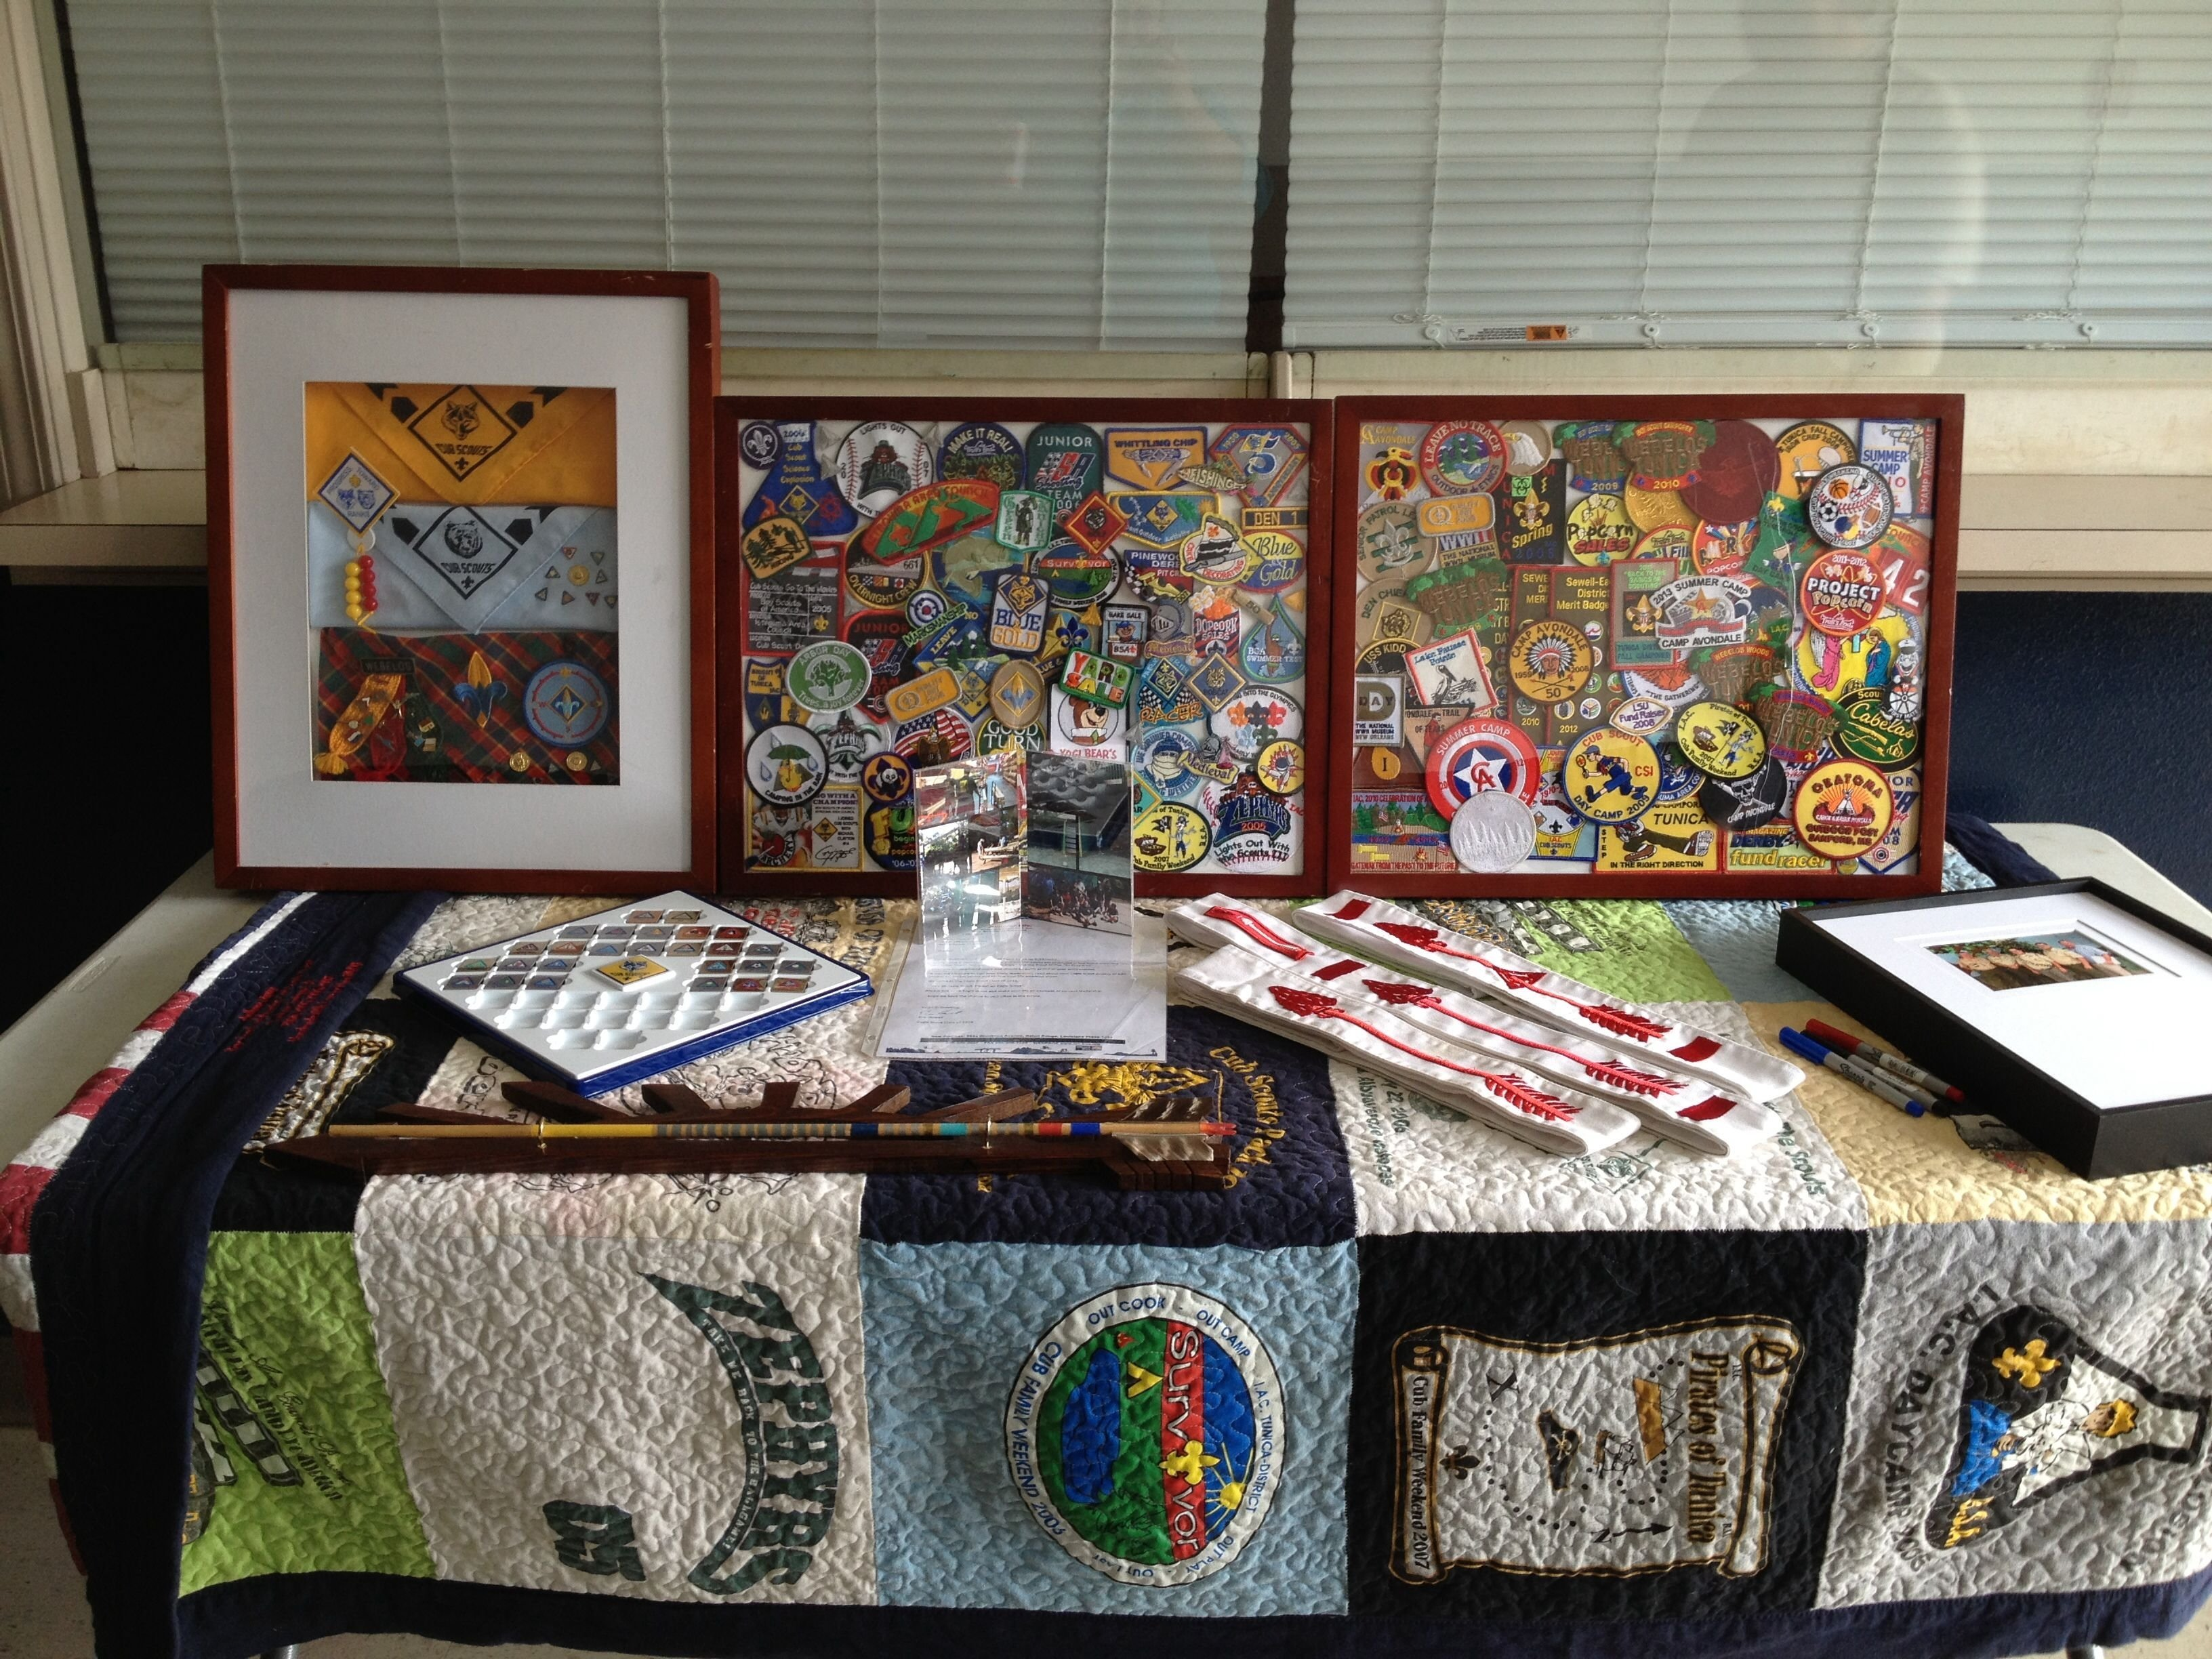 10 Spectacular Boy Scout Court Of Honor Ideas eagle court of honor display table eagle court of honor ideas 1